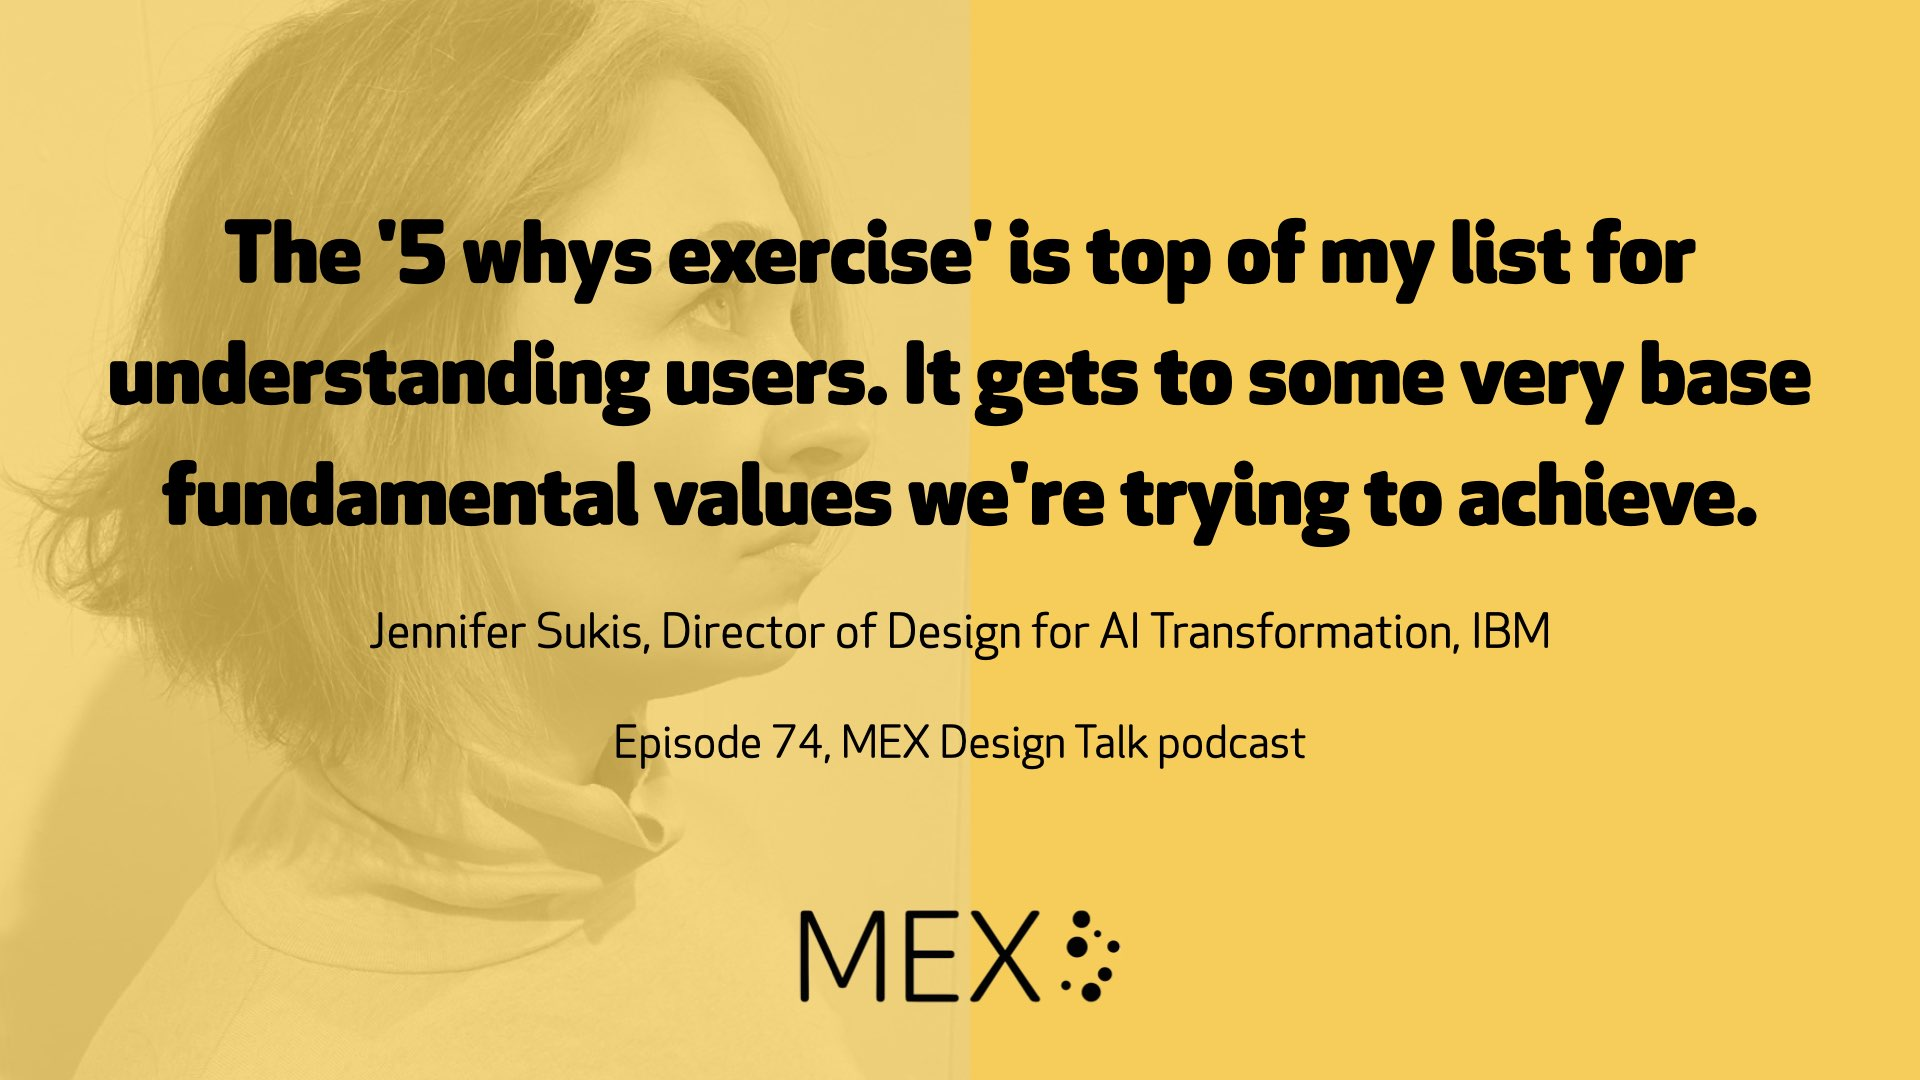 The '5 whys exercise' is top of my list for understanding users. It gets to some very base fundamental values we're trying to achieve. Jennifer Sukis, Director of Design for AI Transformation, IBM Episode 74, MEX Design Talk podcast